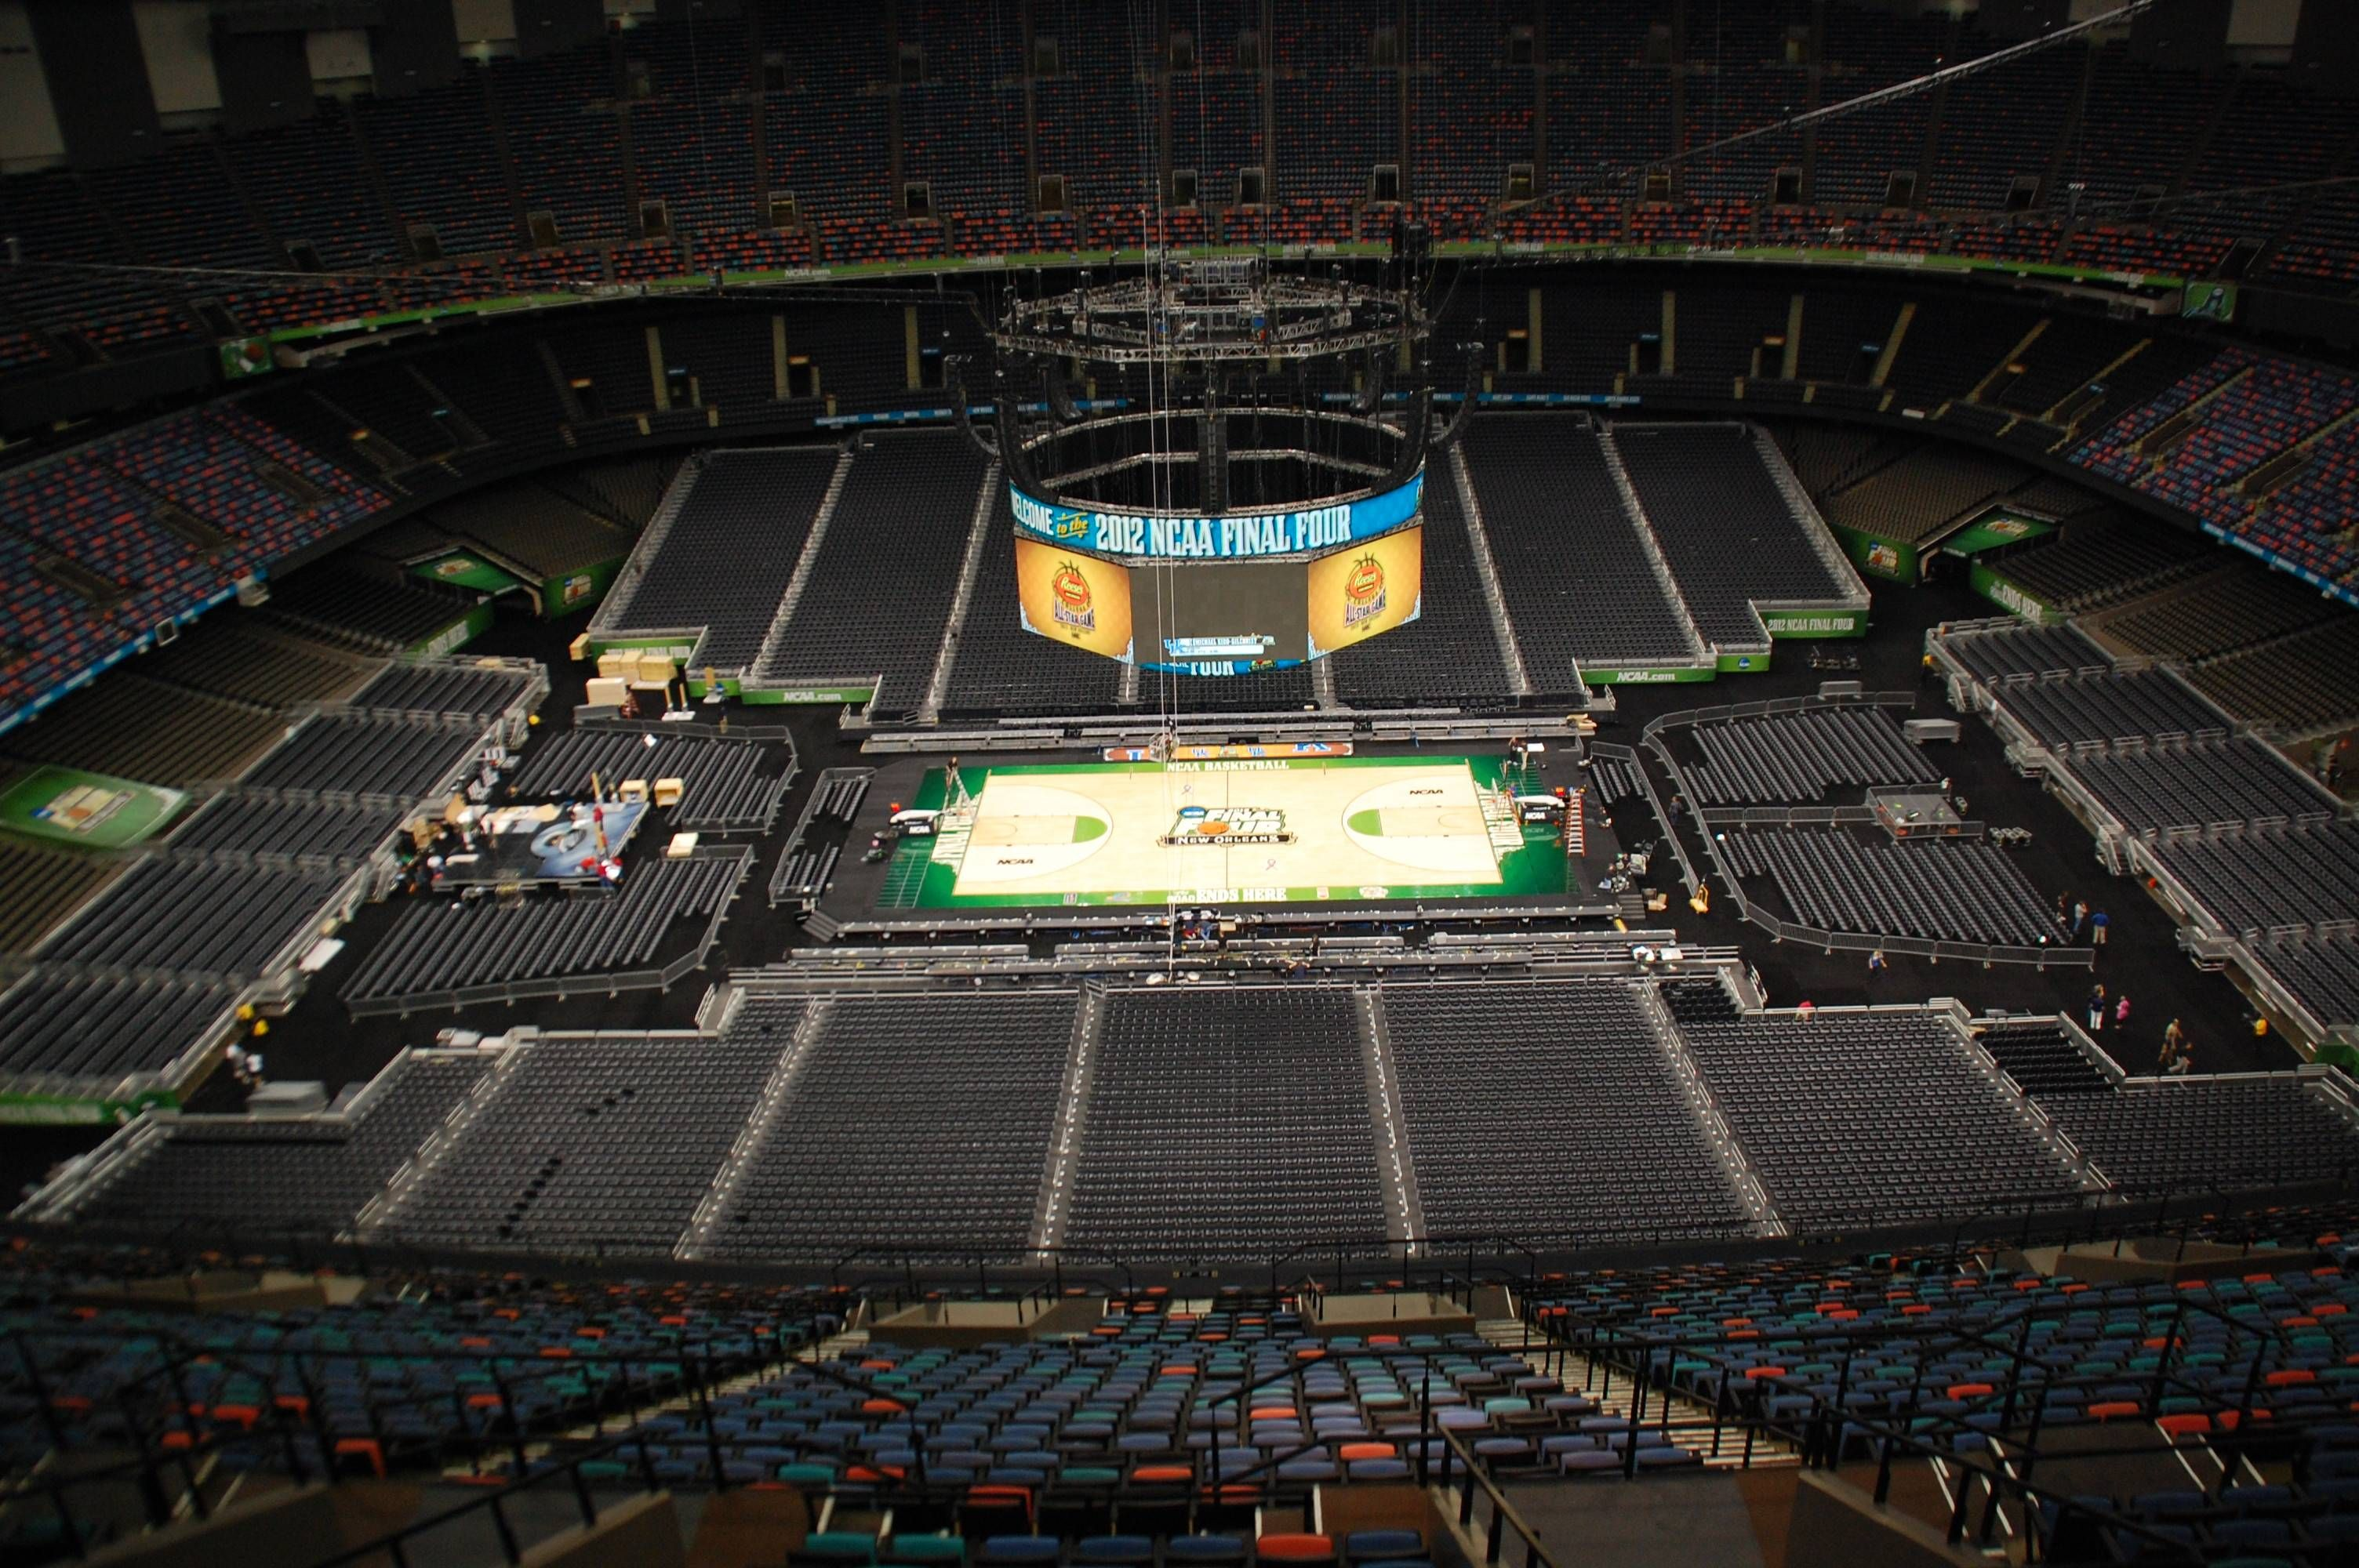 new orleans super dome home of the 2012 final four